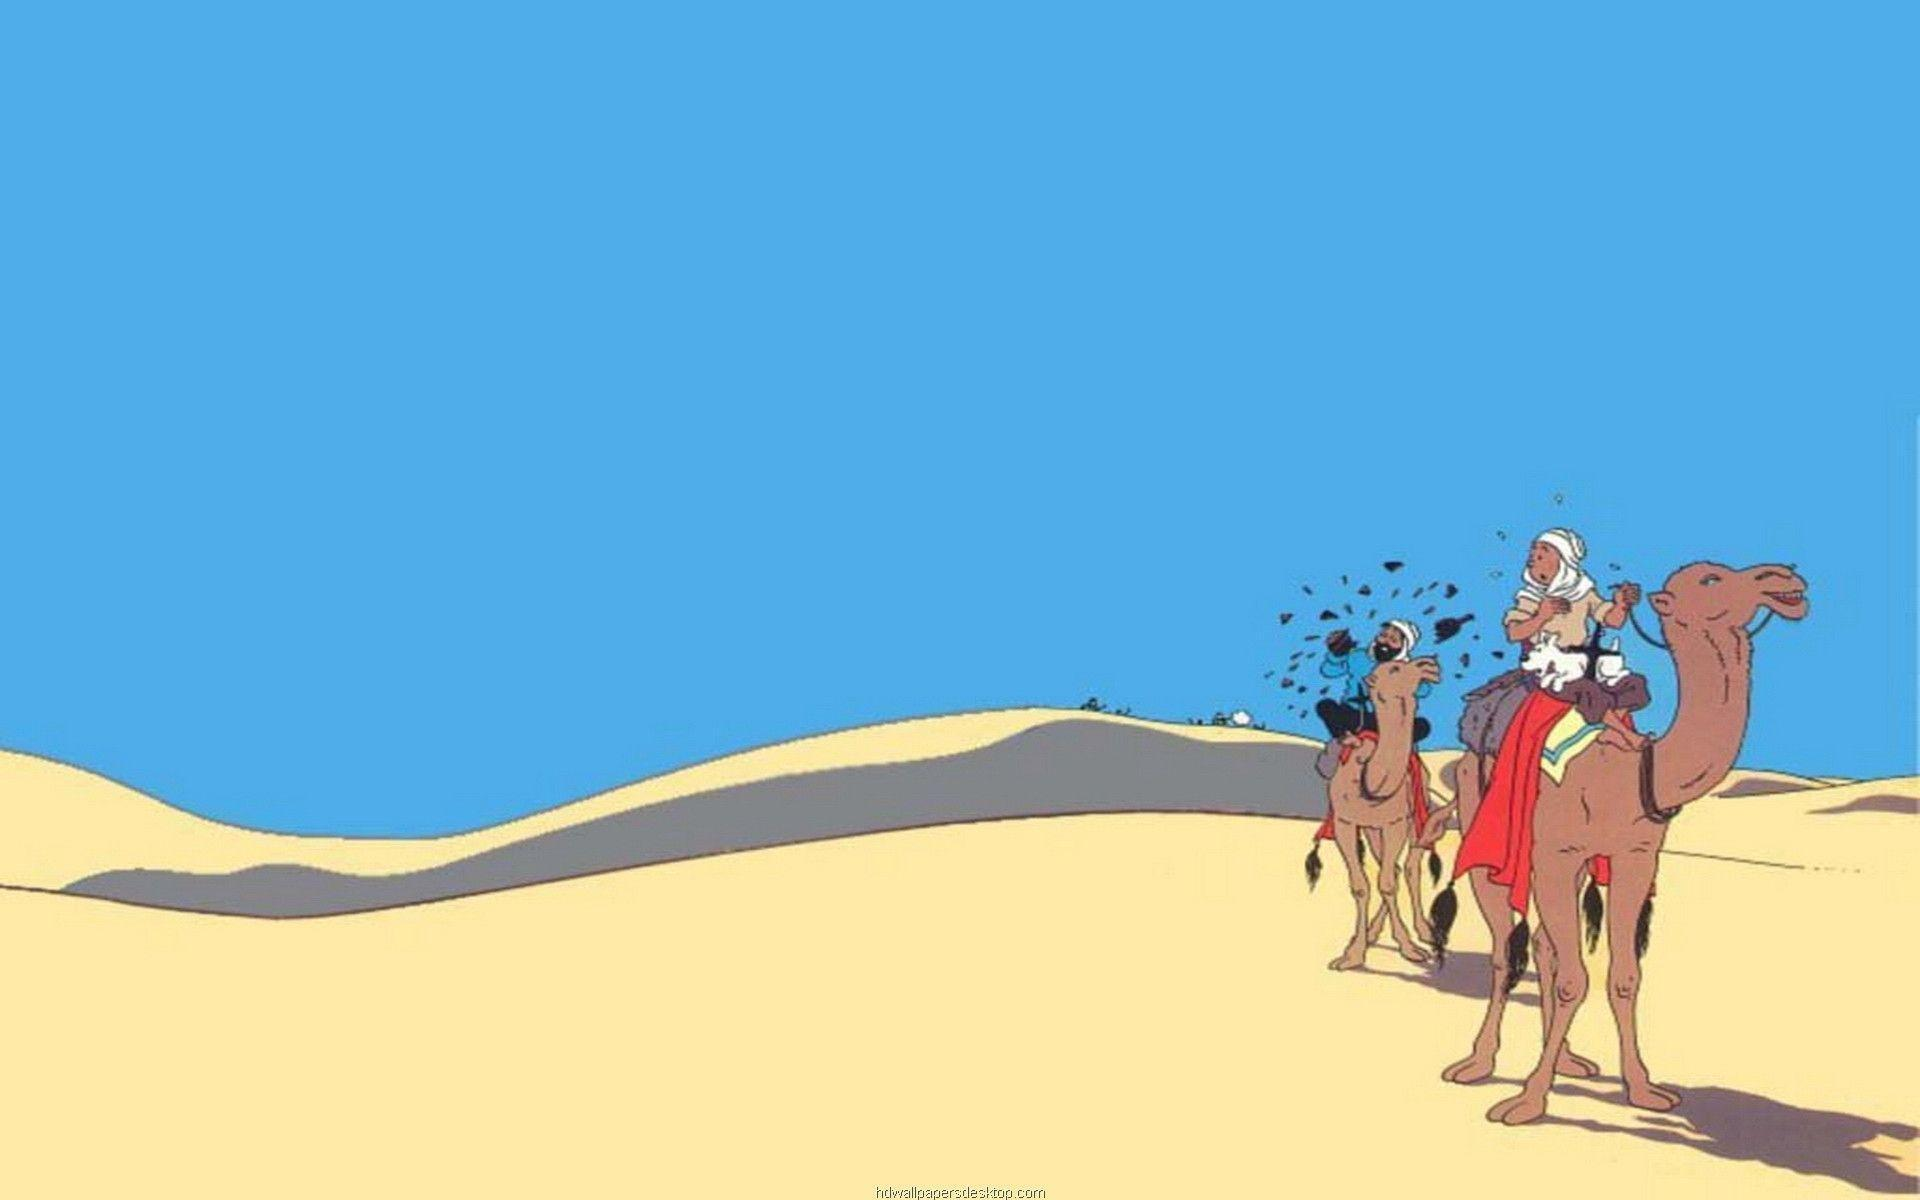 tintin and snowy wallpaper - photo #1